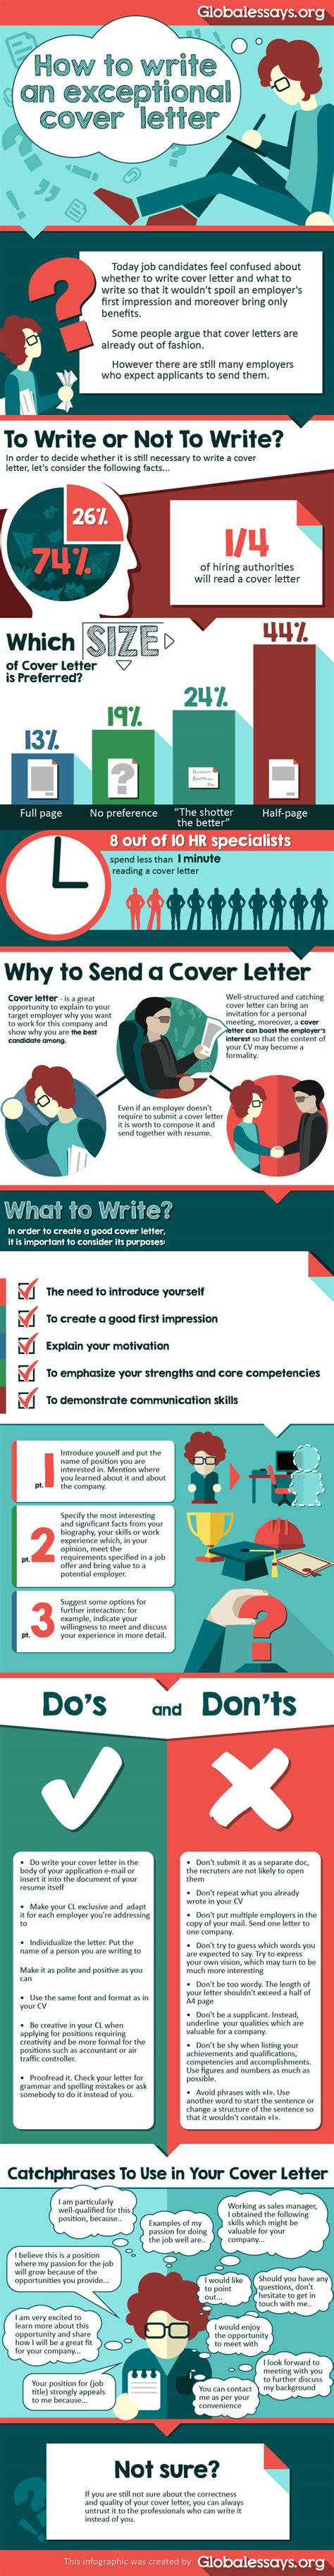 exceptional cover letter how to write an exceptional cover letter infographic